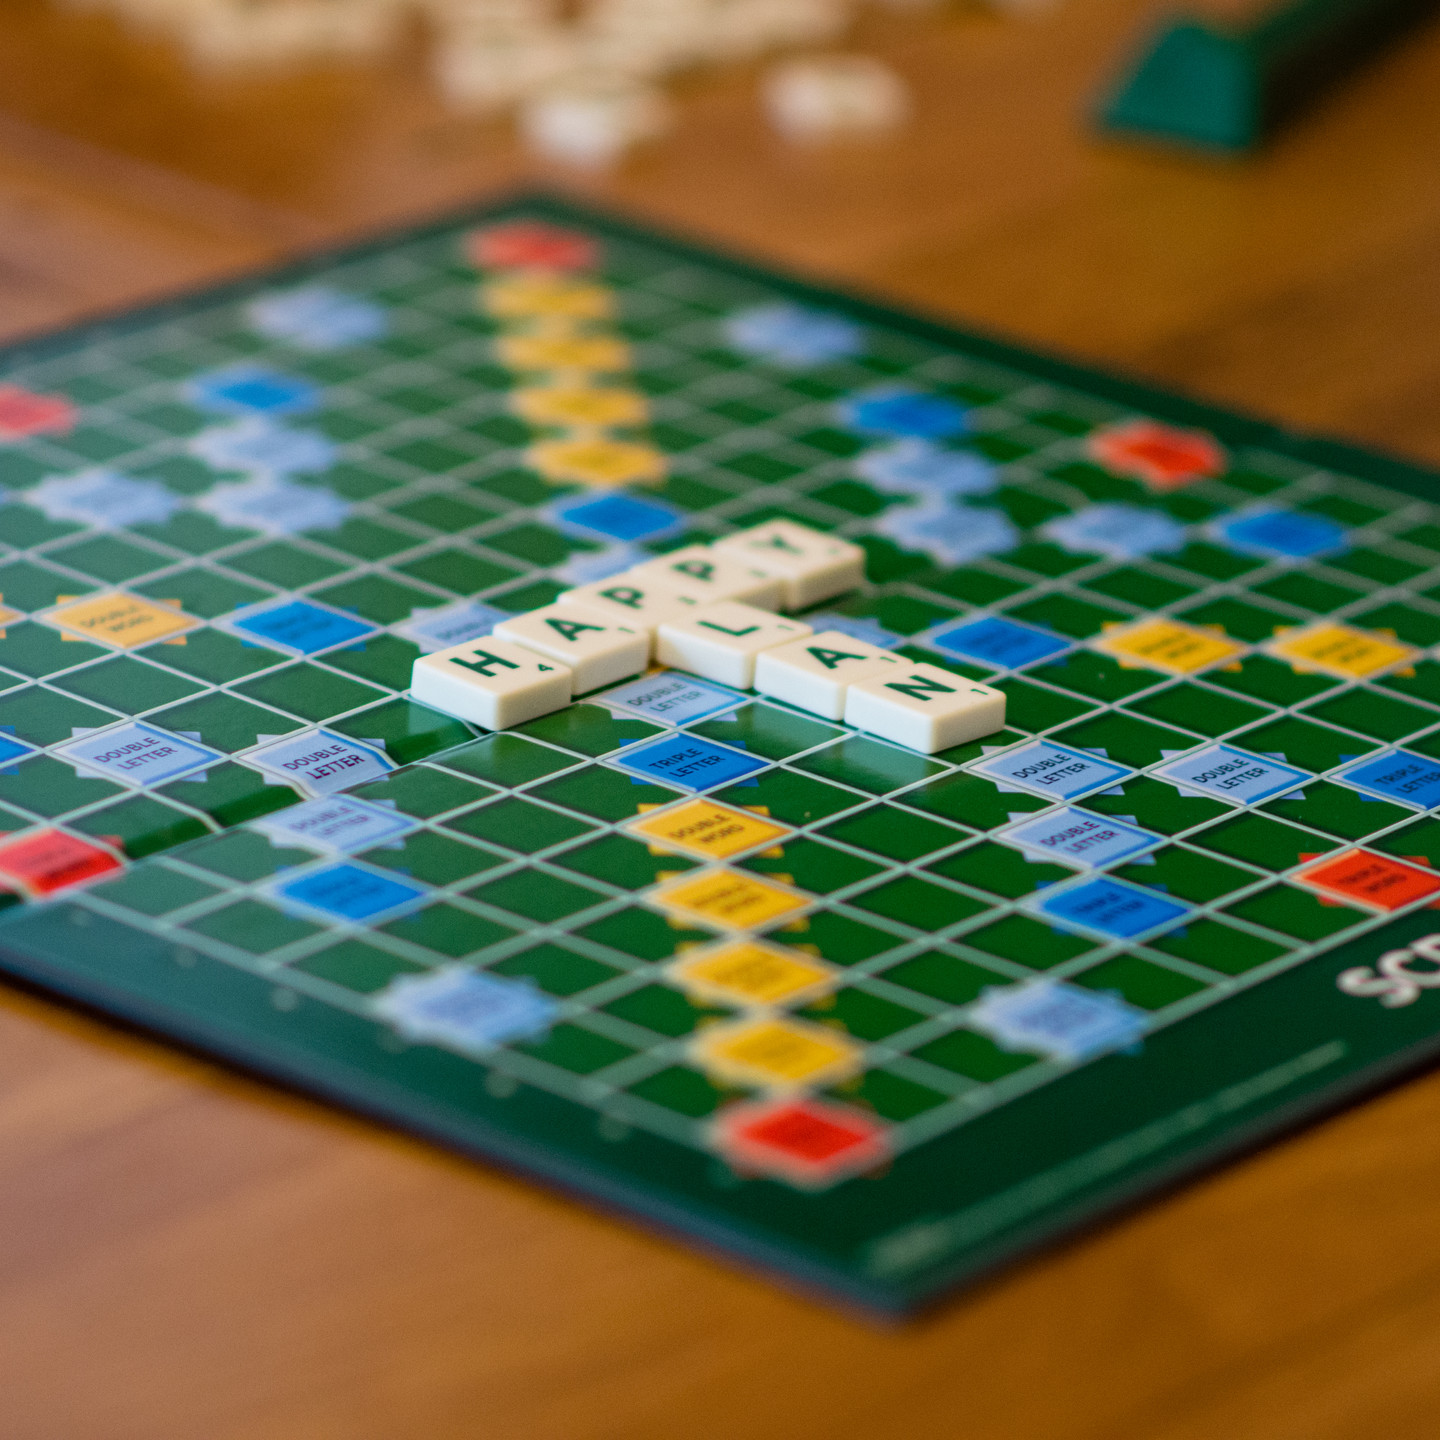 Lifestyle Photographer Solihull, close up image of a scrabble board